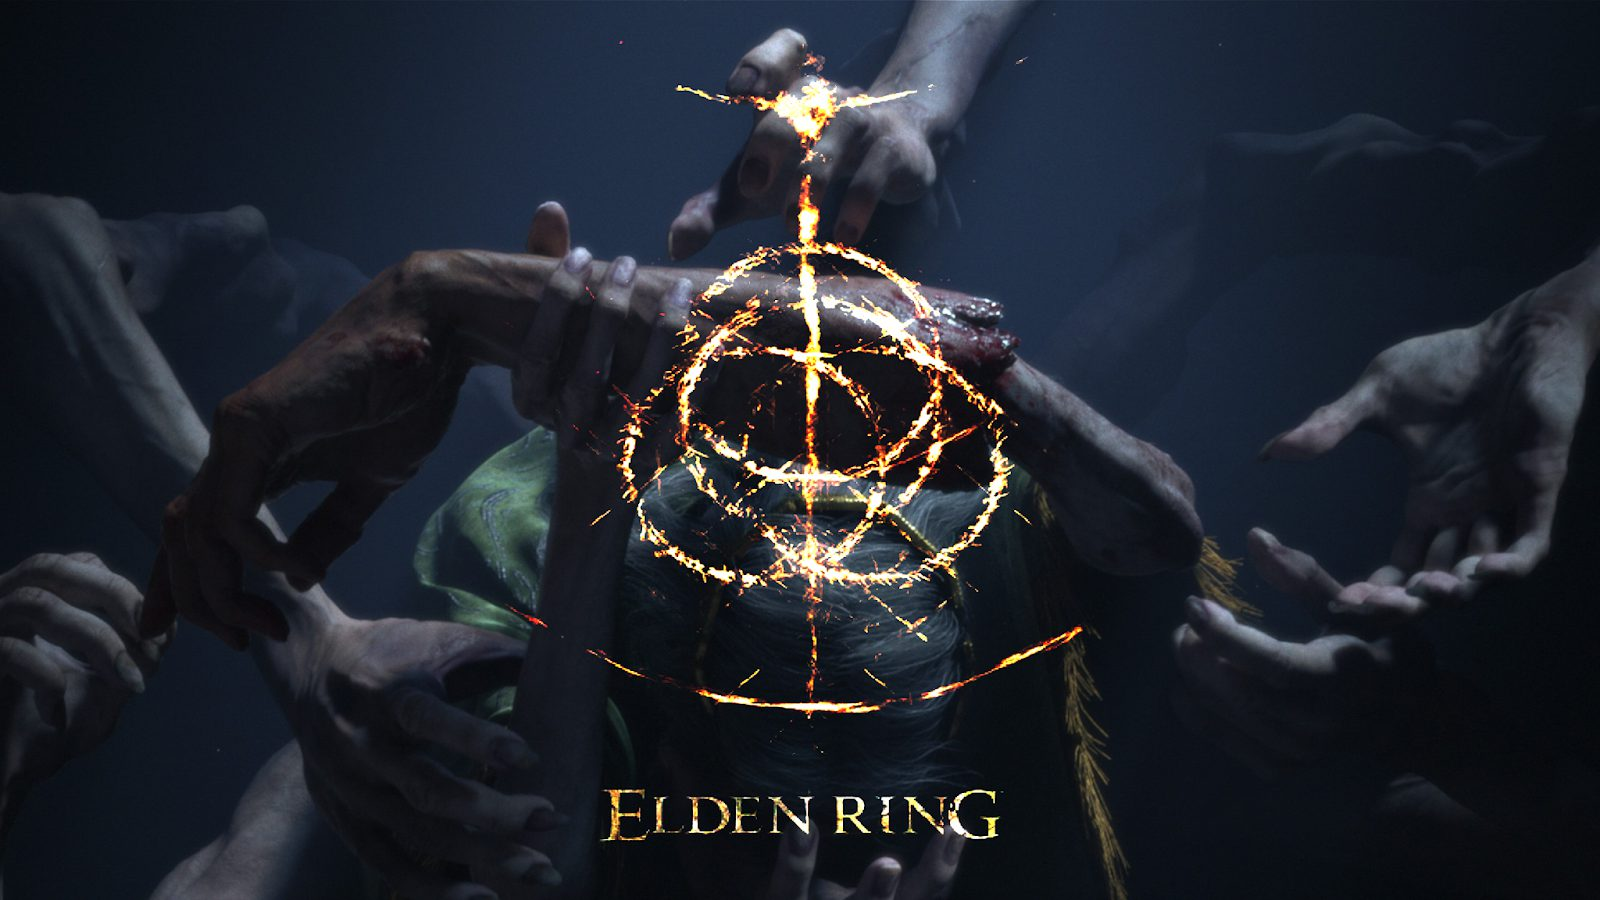 Elden Ring March Reveal Reportedly Cancelled After Trailer Leak, When Will we Get a Release Date?